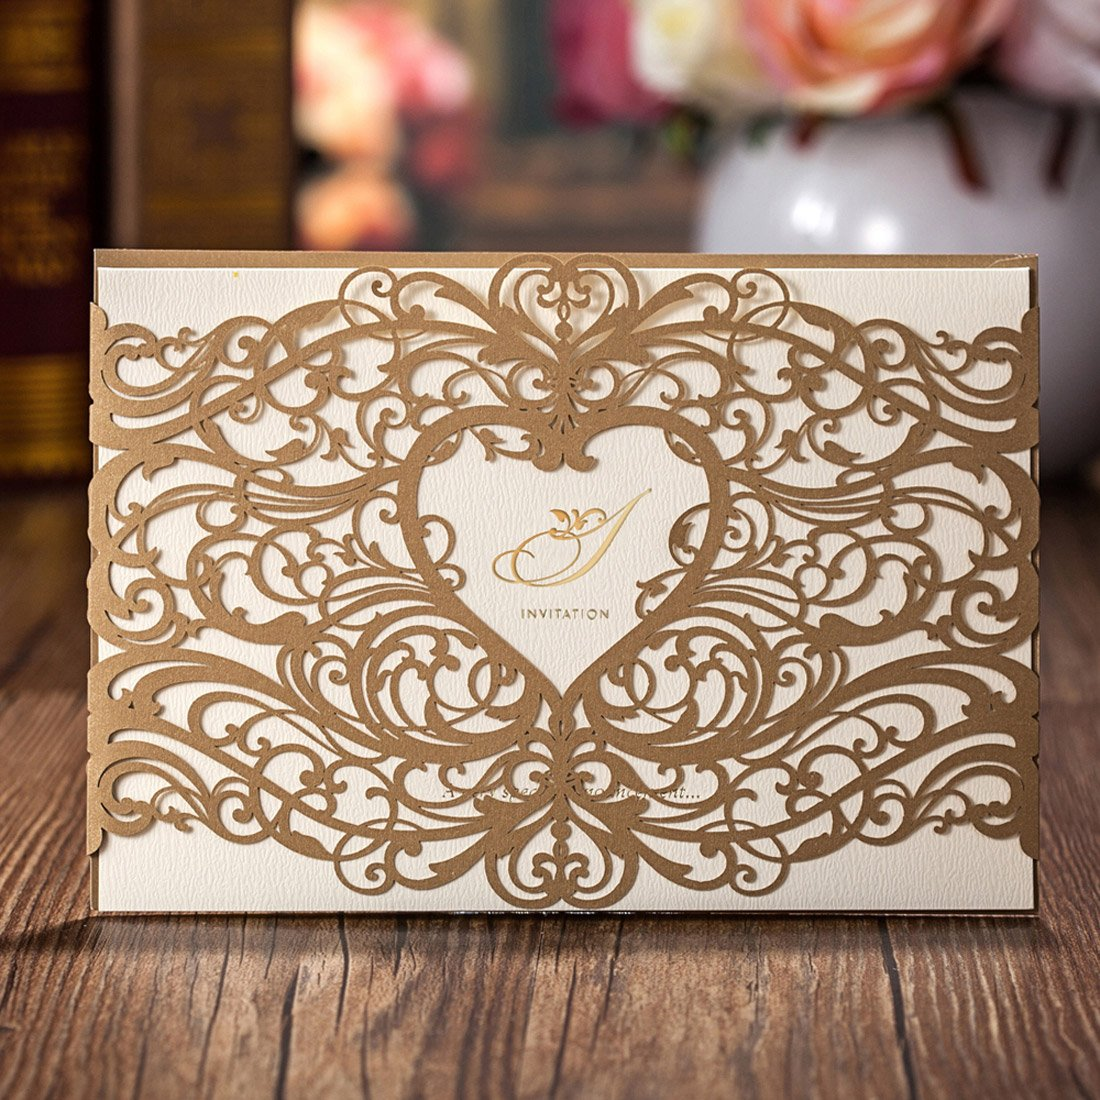 Amazon wishmade laser cut invitations cards sets gold 50 pieces amazon wishmade laser cut invitations cards sets gold 50 pieces for wedding birthday bridal shower with envelopes and white printable paper kits solutioingenieria Gallery